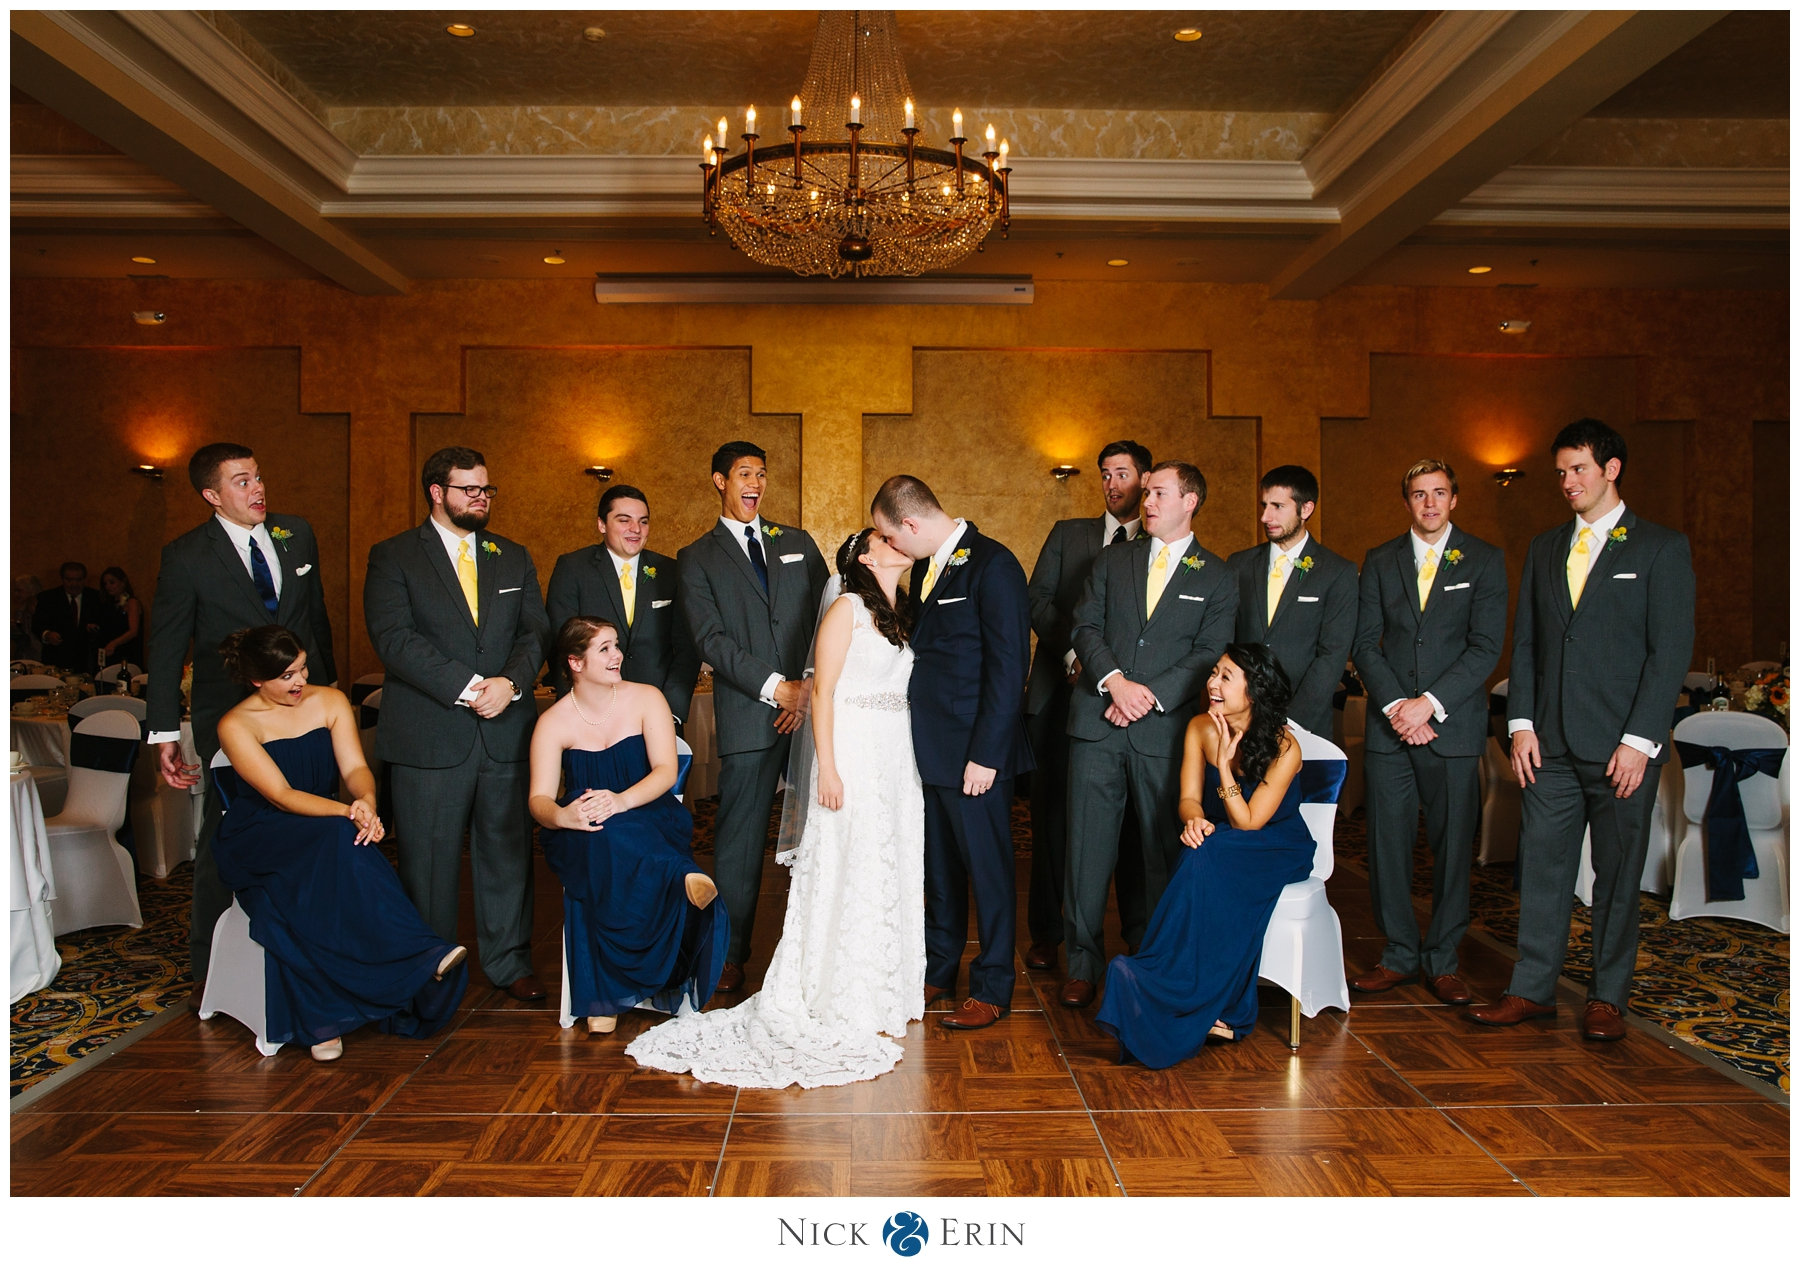 Donner_Photography_Fort Myer Wedding_Katie & Will_0041